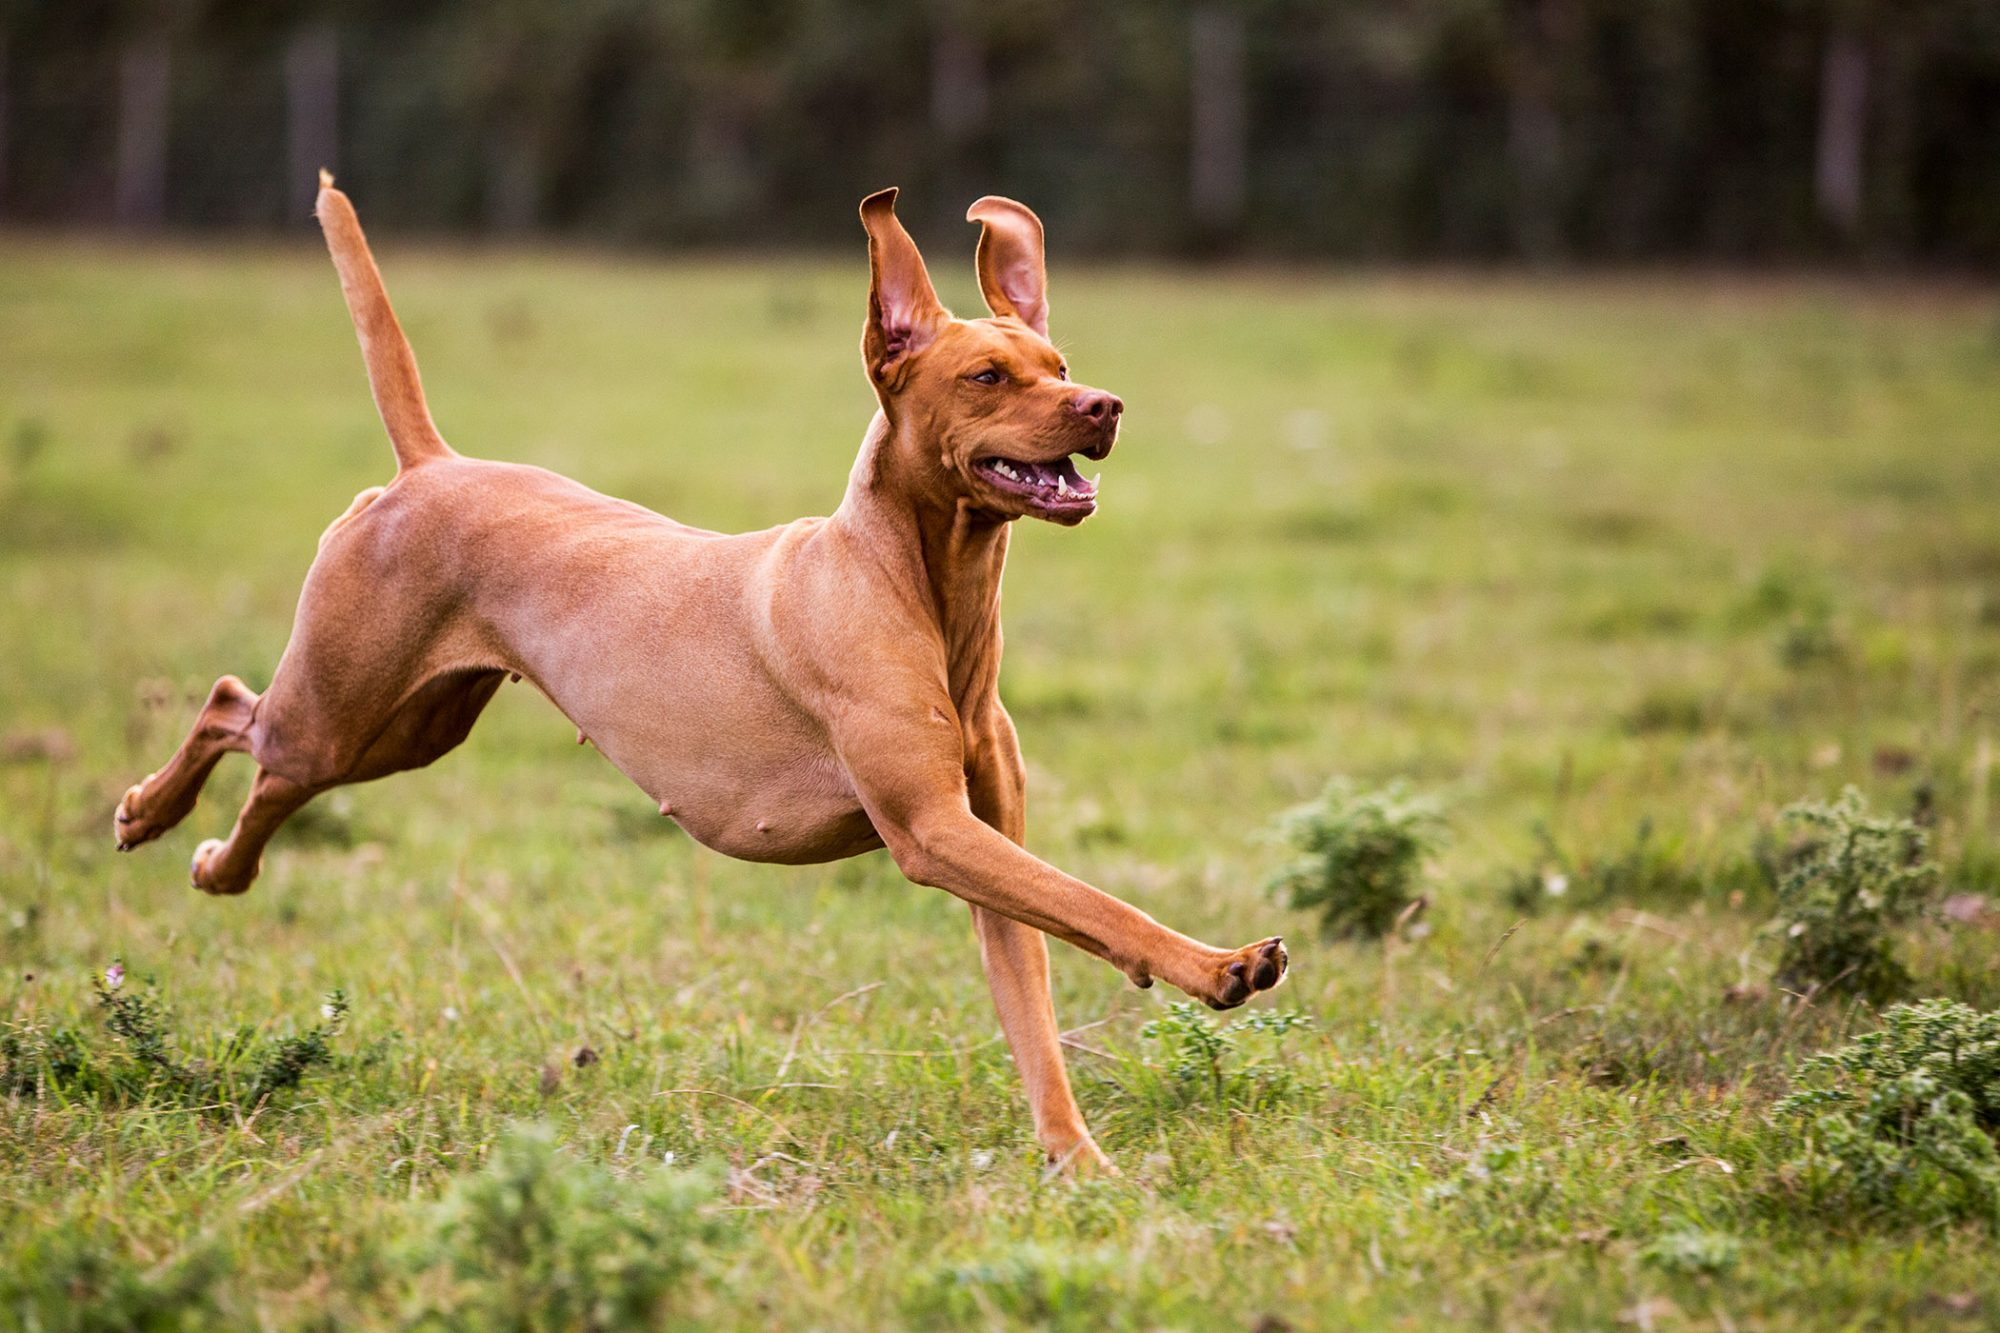 vizsla dog running grassy field